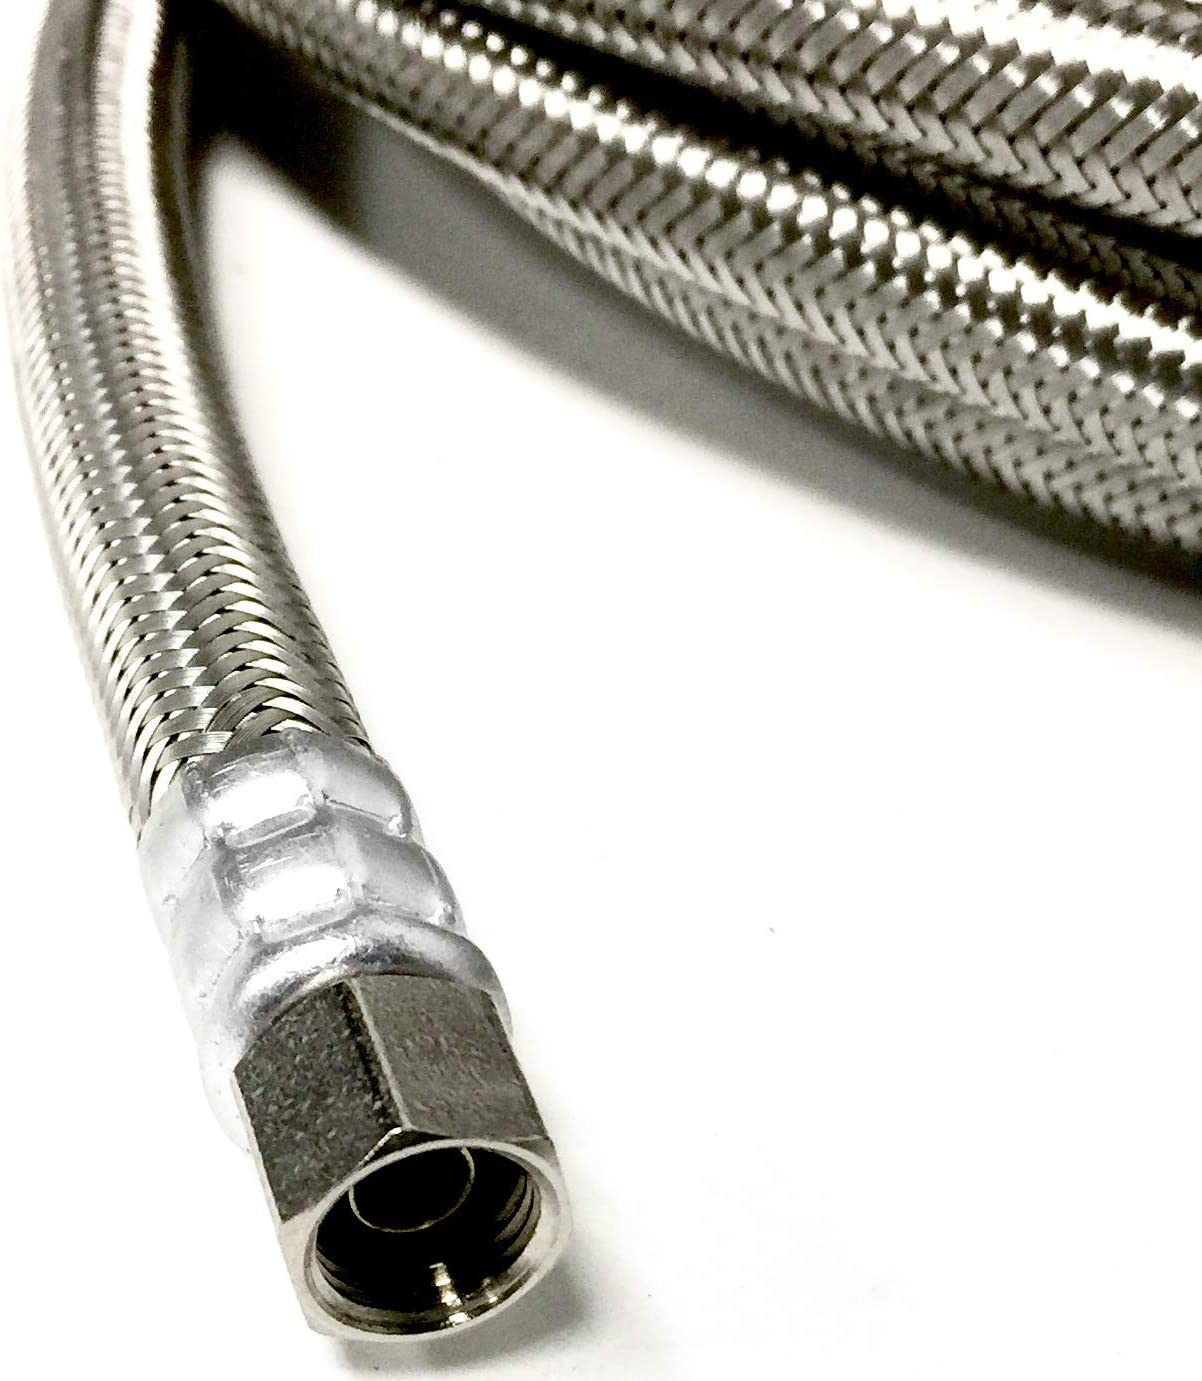 Shark Industrial 25 FT Stainless Steel Braided Ice Maker Hose with 1/4 Comp by 1/4 Comp Connection